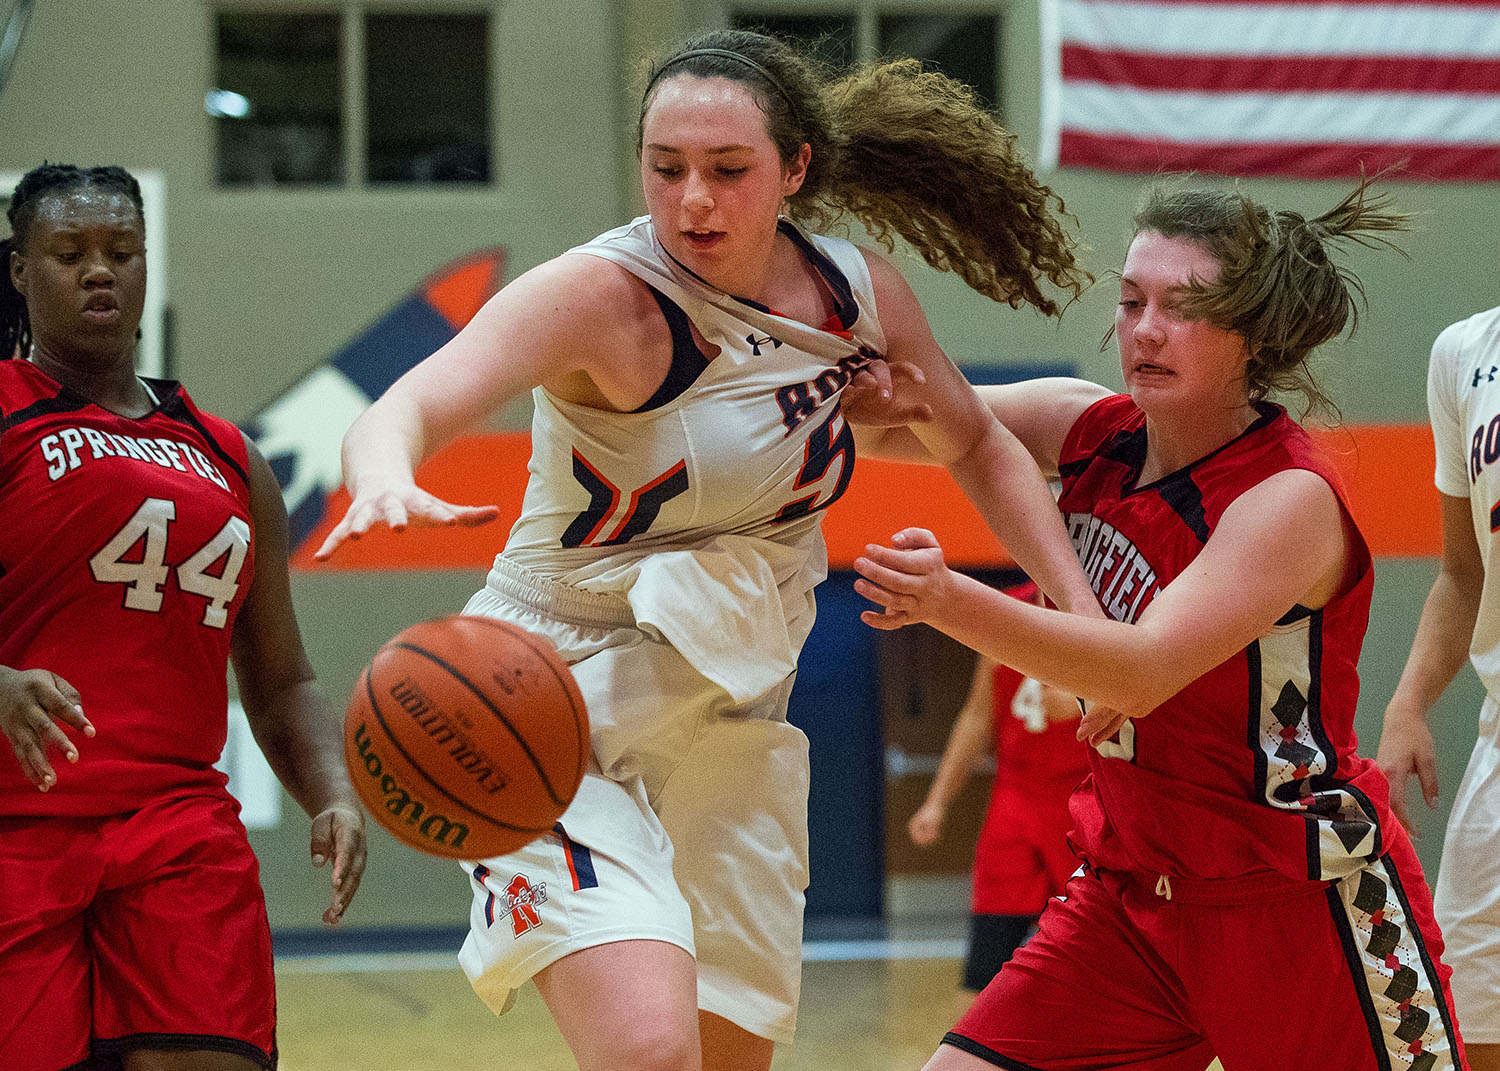 Rochester's Angela Perry and Springfield's Abby Ratsch battle for a rebound at Rochester High School Wednesday, Jan. 18. Ted Schurter/The State Journal-Register